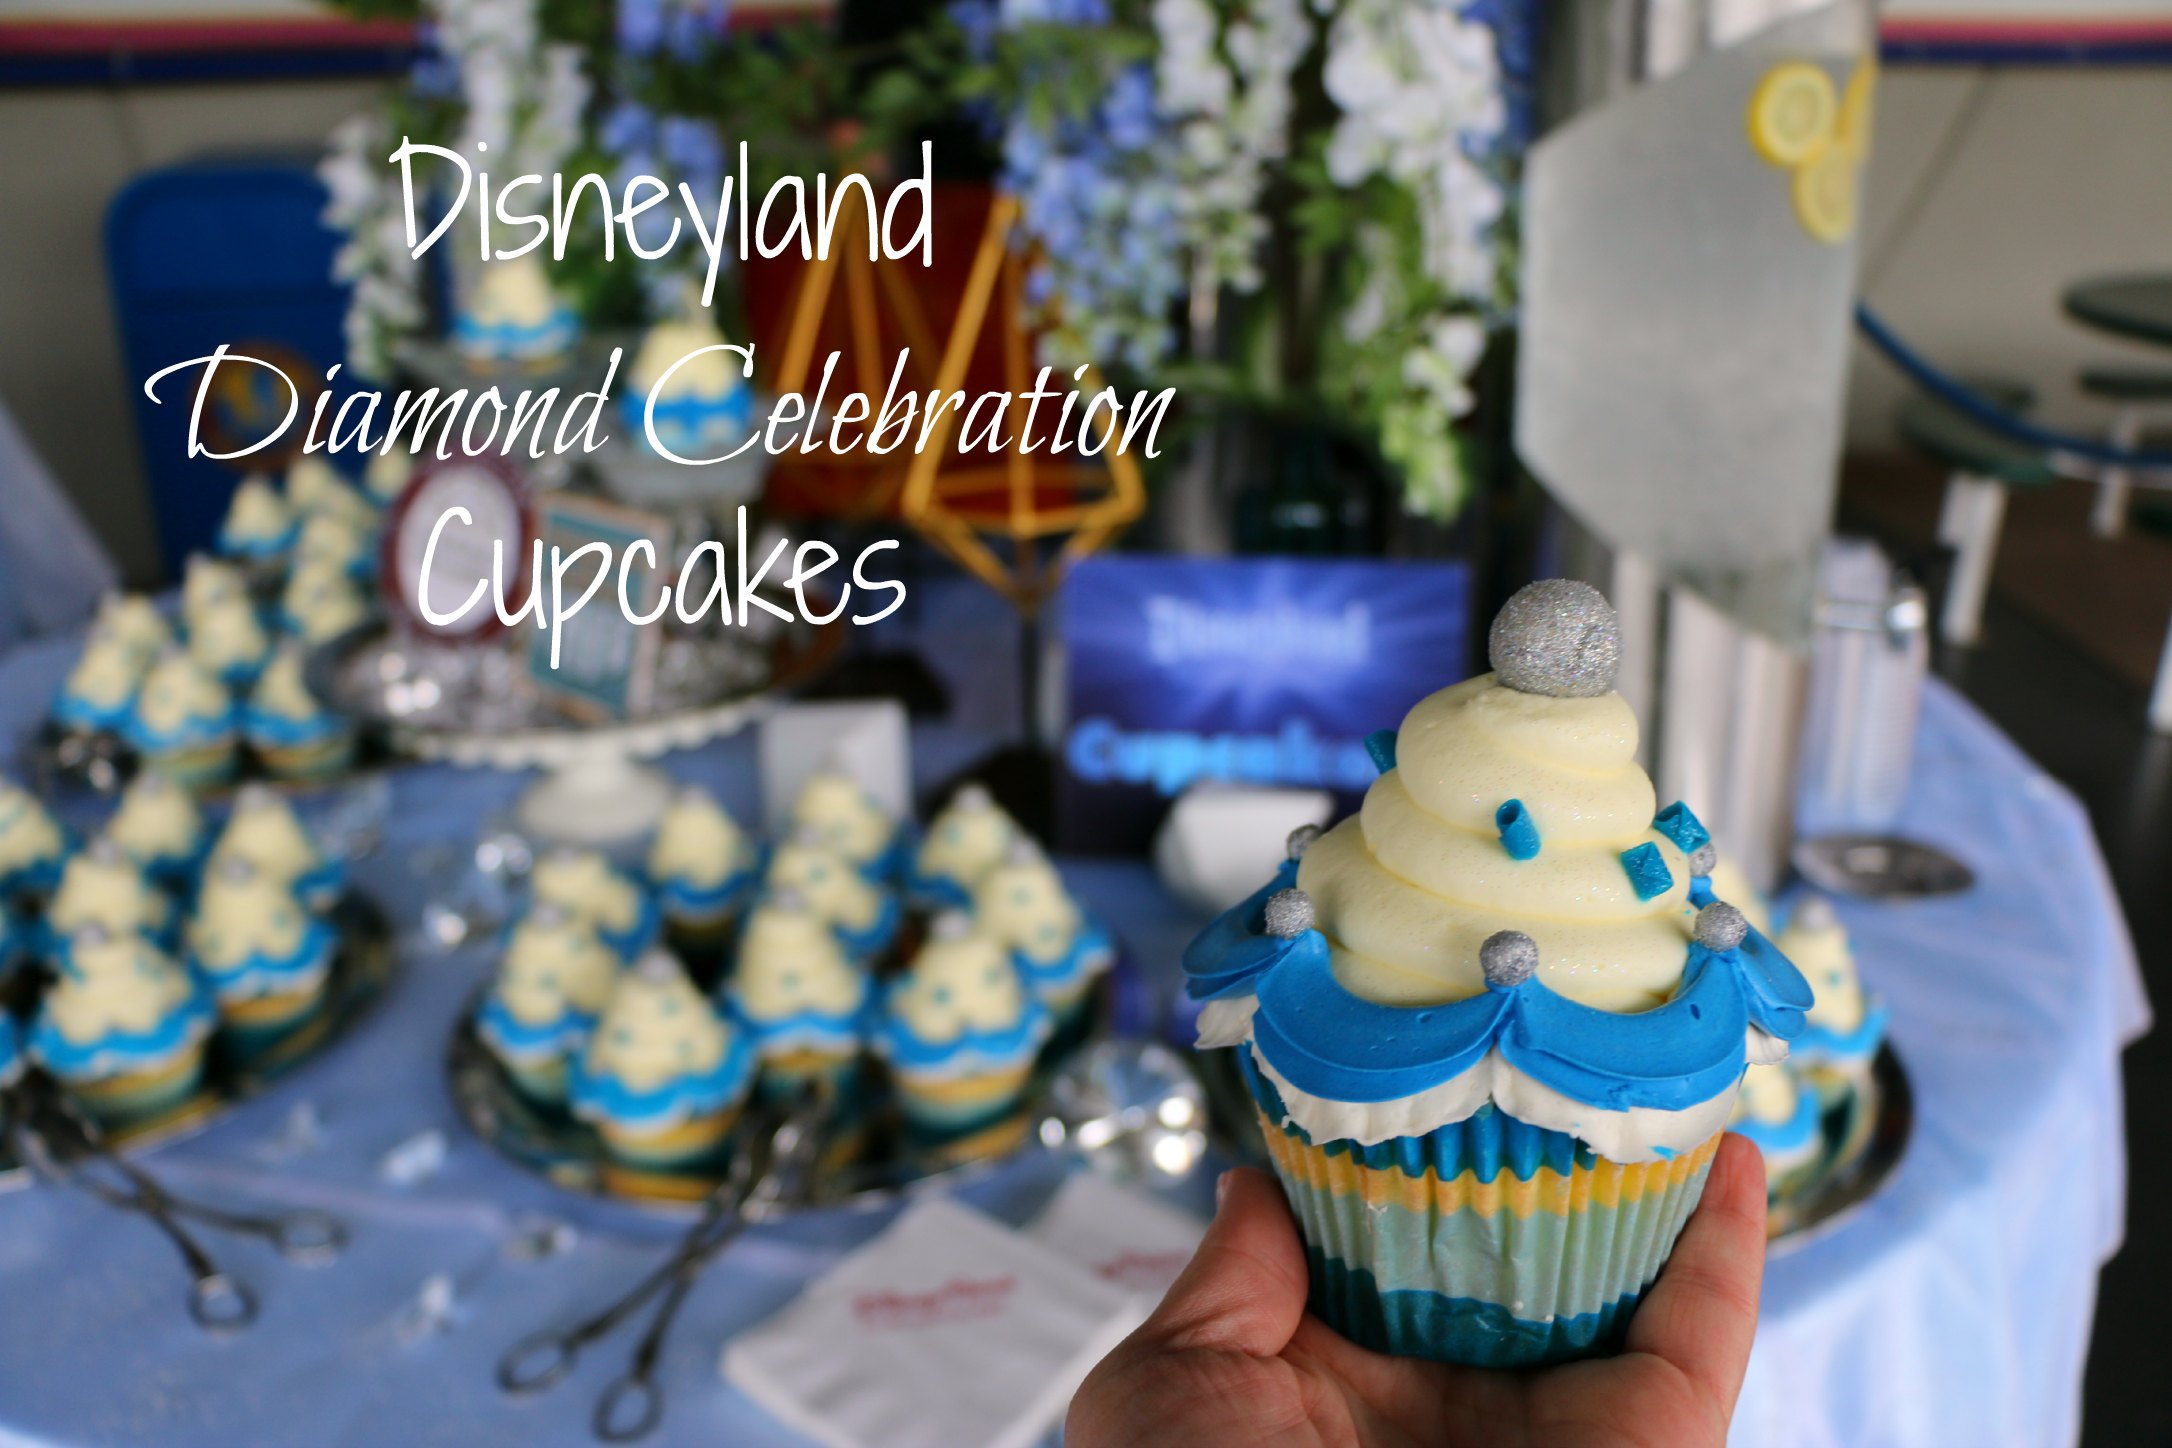 Disneyland Diamond Celebration Cupcakes